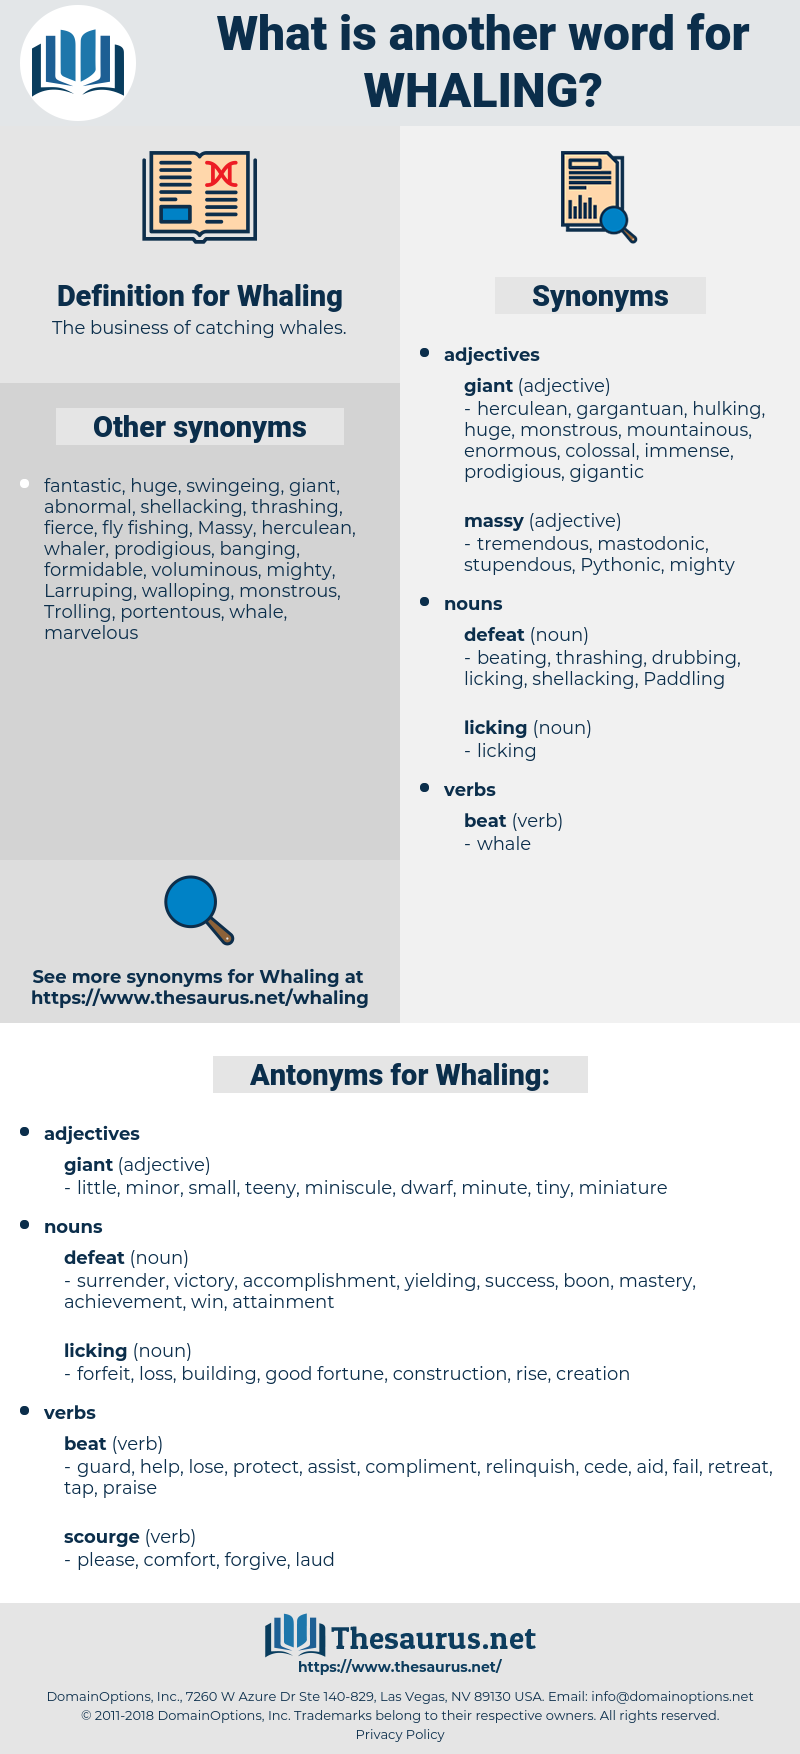 Whaling, synonym Whaling, another word for Whaling, words like Whaling, thesaurus Whaling